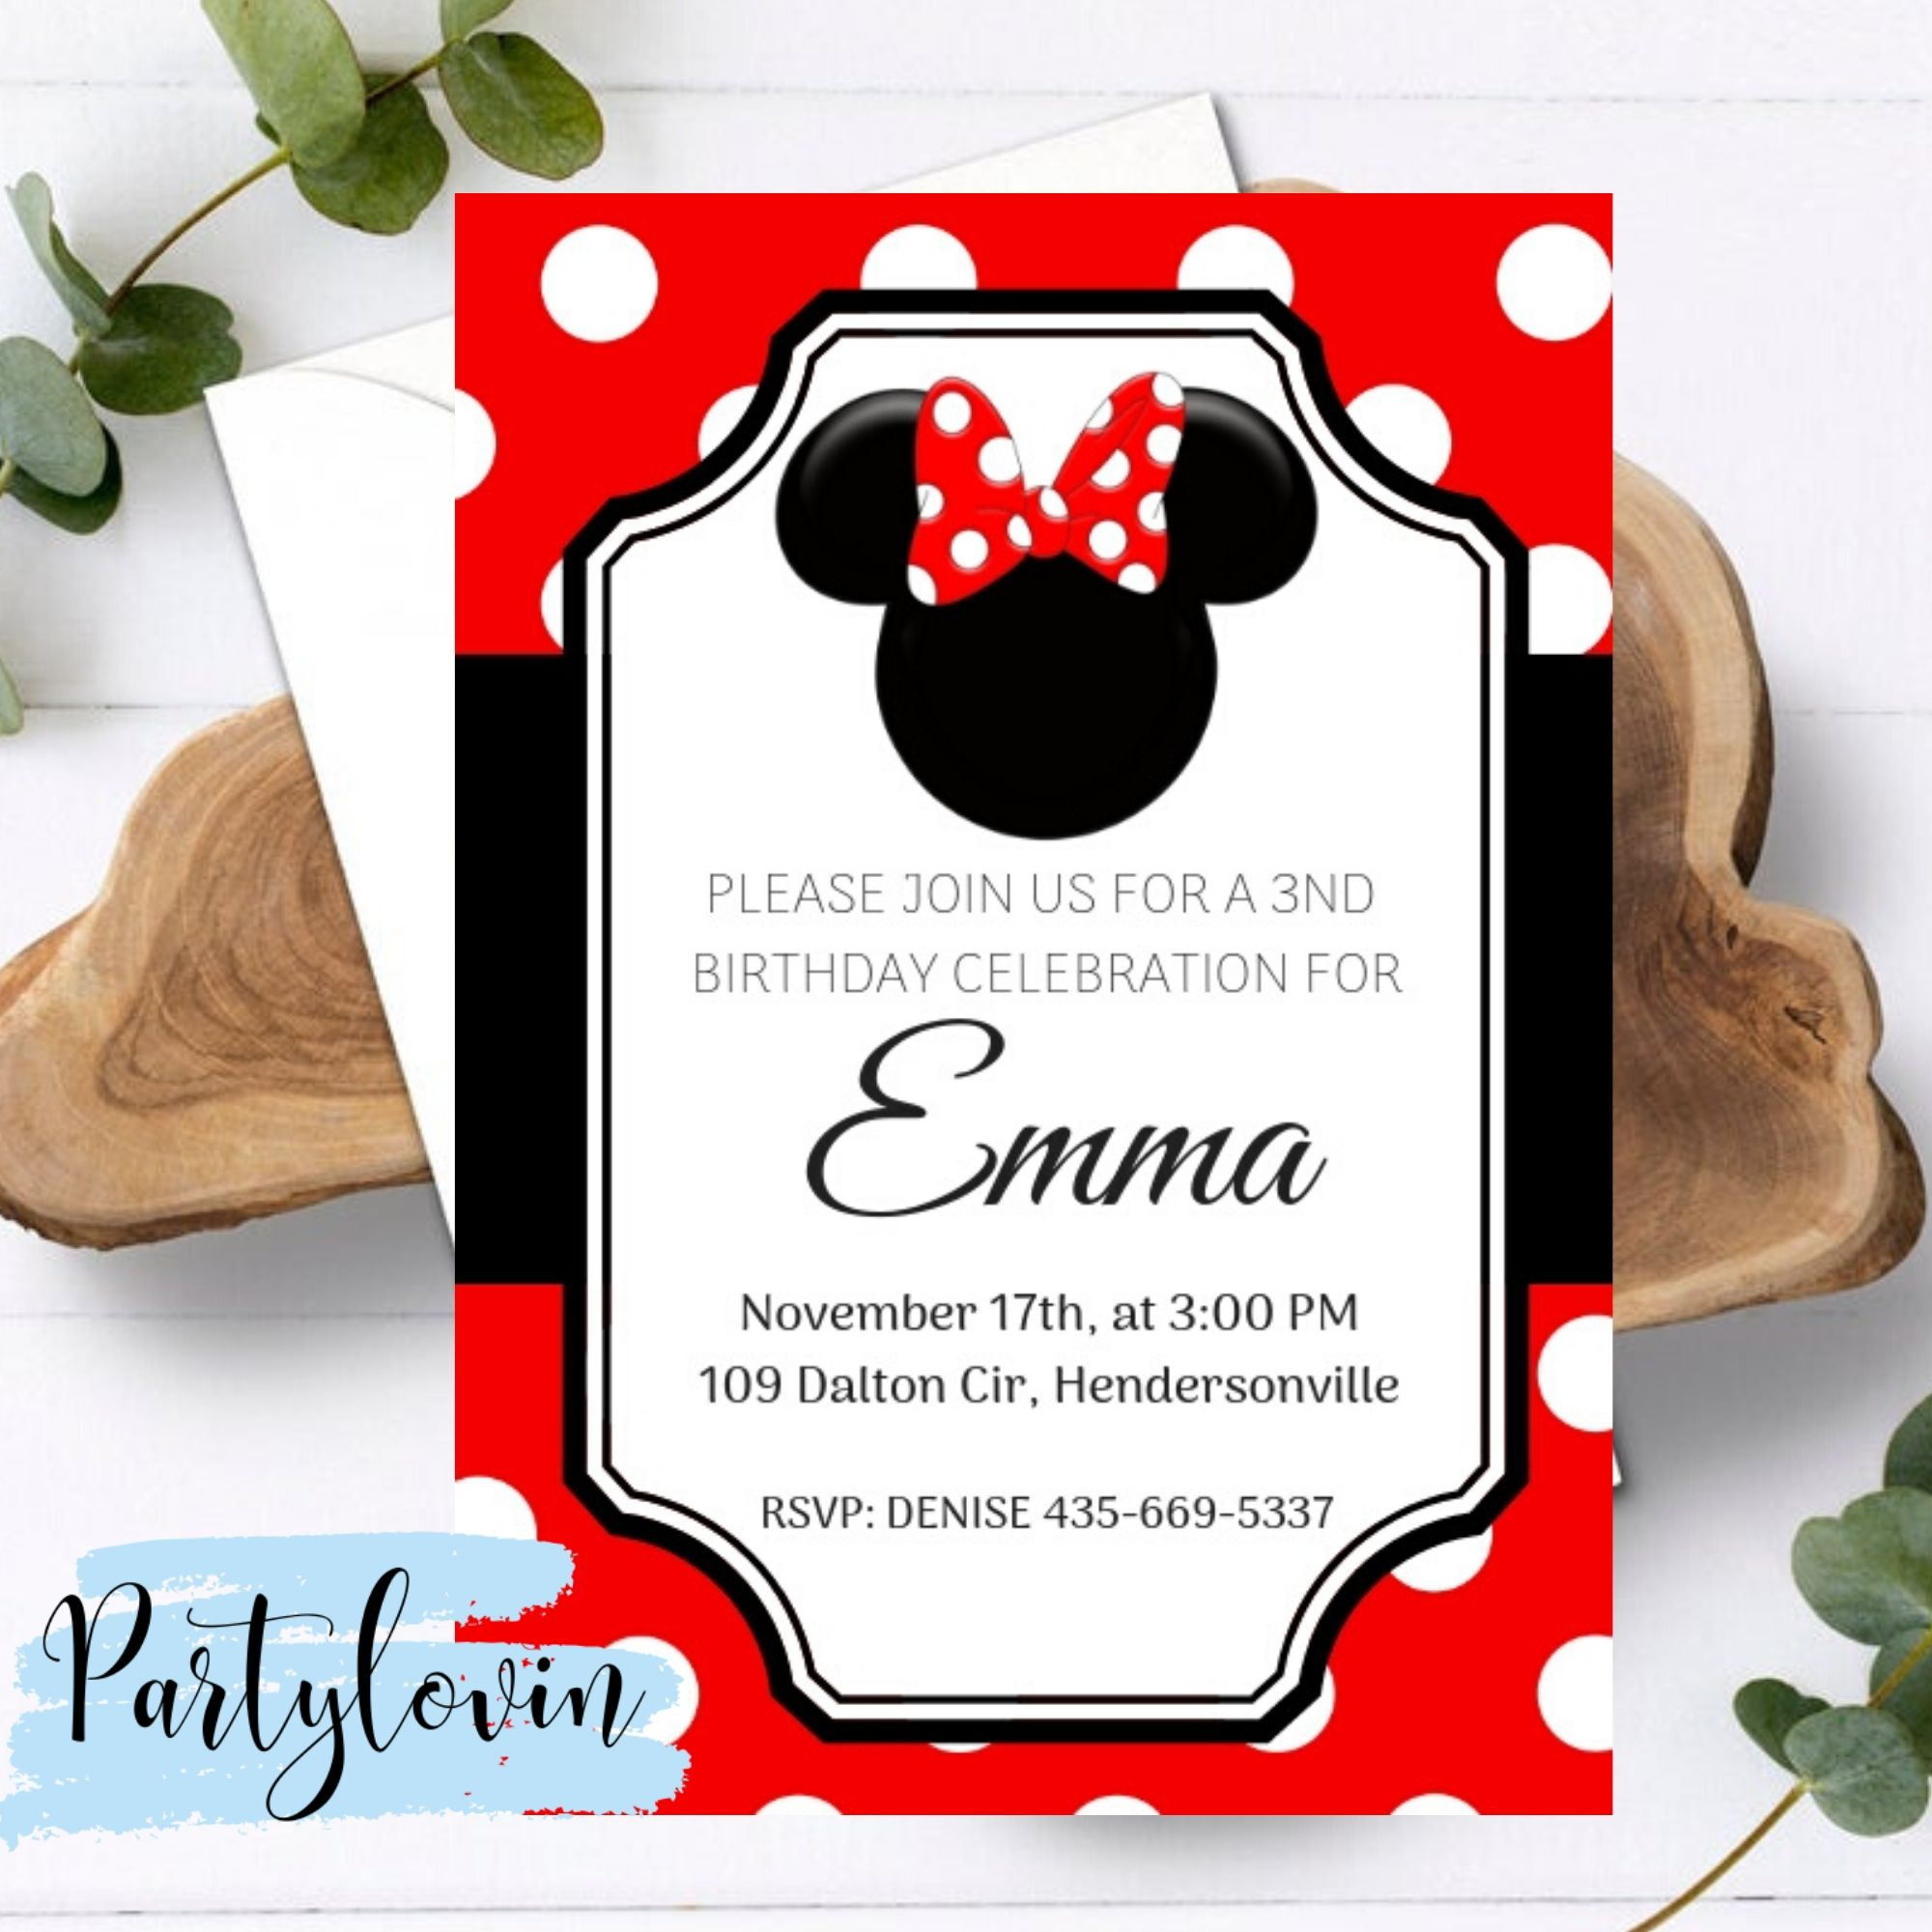 FREE PRINTABLE Minnie Mouse Birthday Party